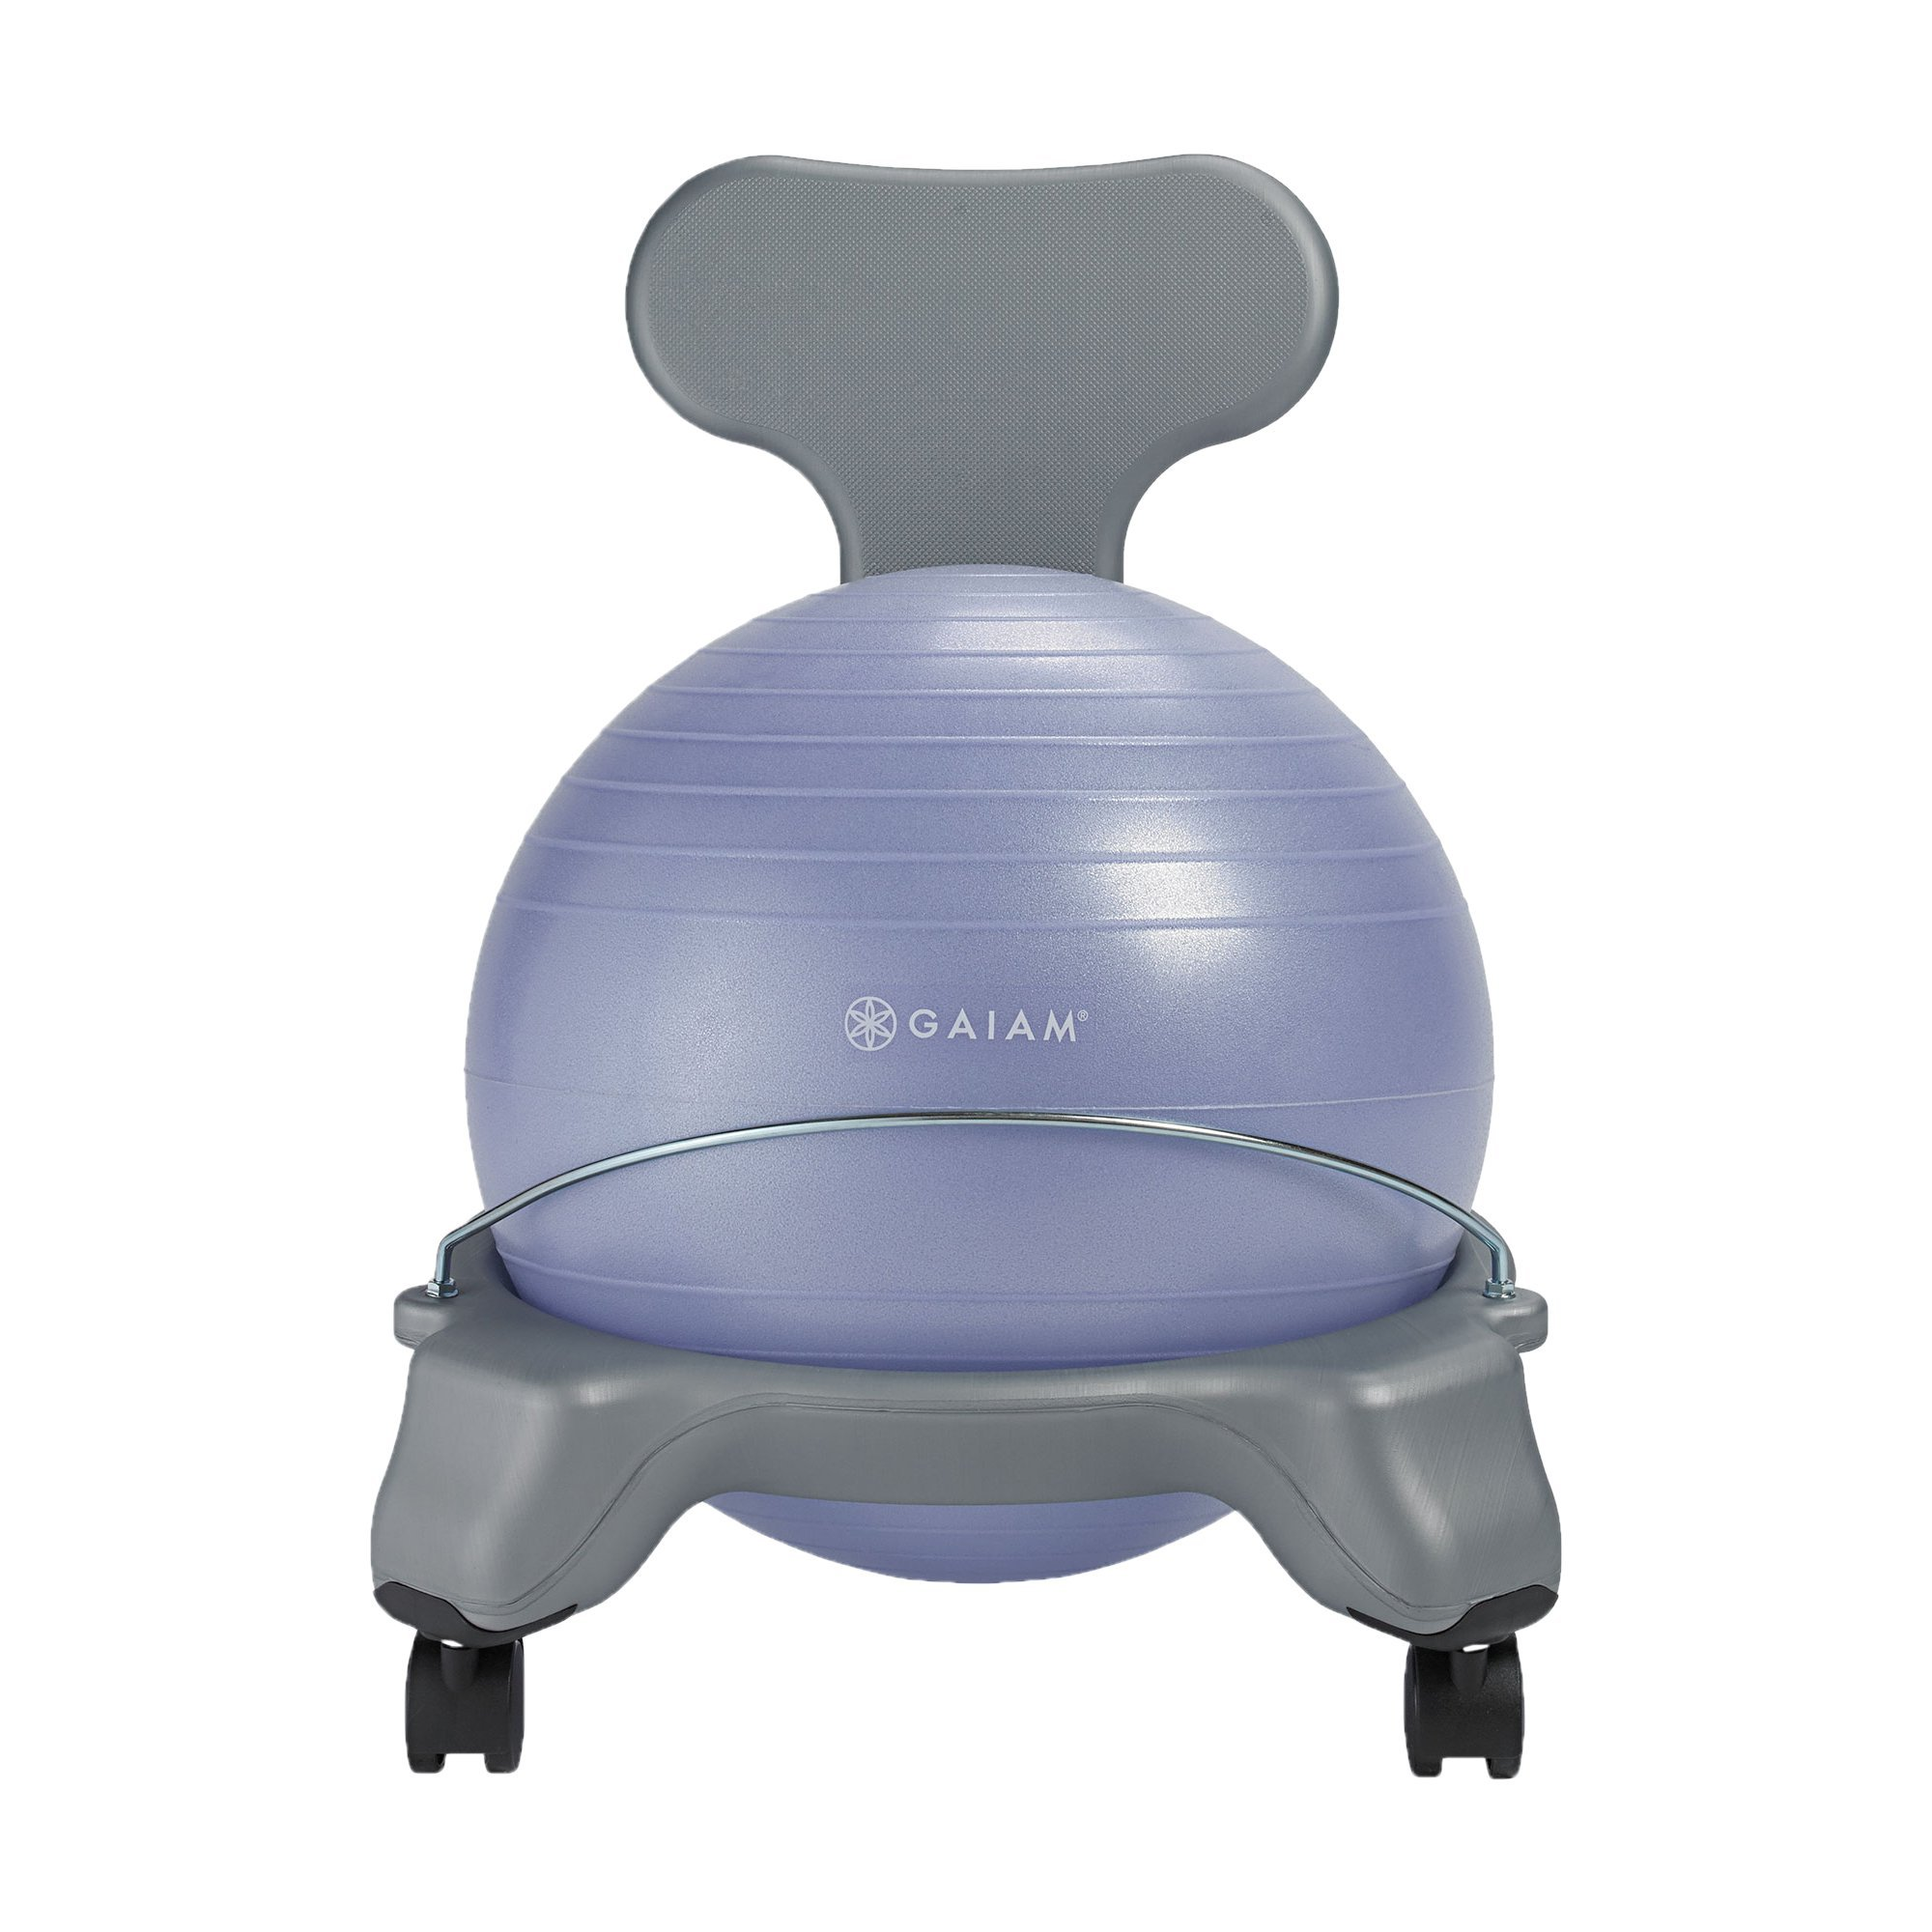 Gaiam Kids Balance Ball Chair - Classic Kid's Stability Ball Chair, Alternative School Classroom Flexible Desk Seating for Active Students with Satisfaction Guarantee, Purple (Renewed)